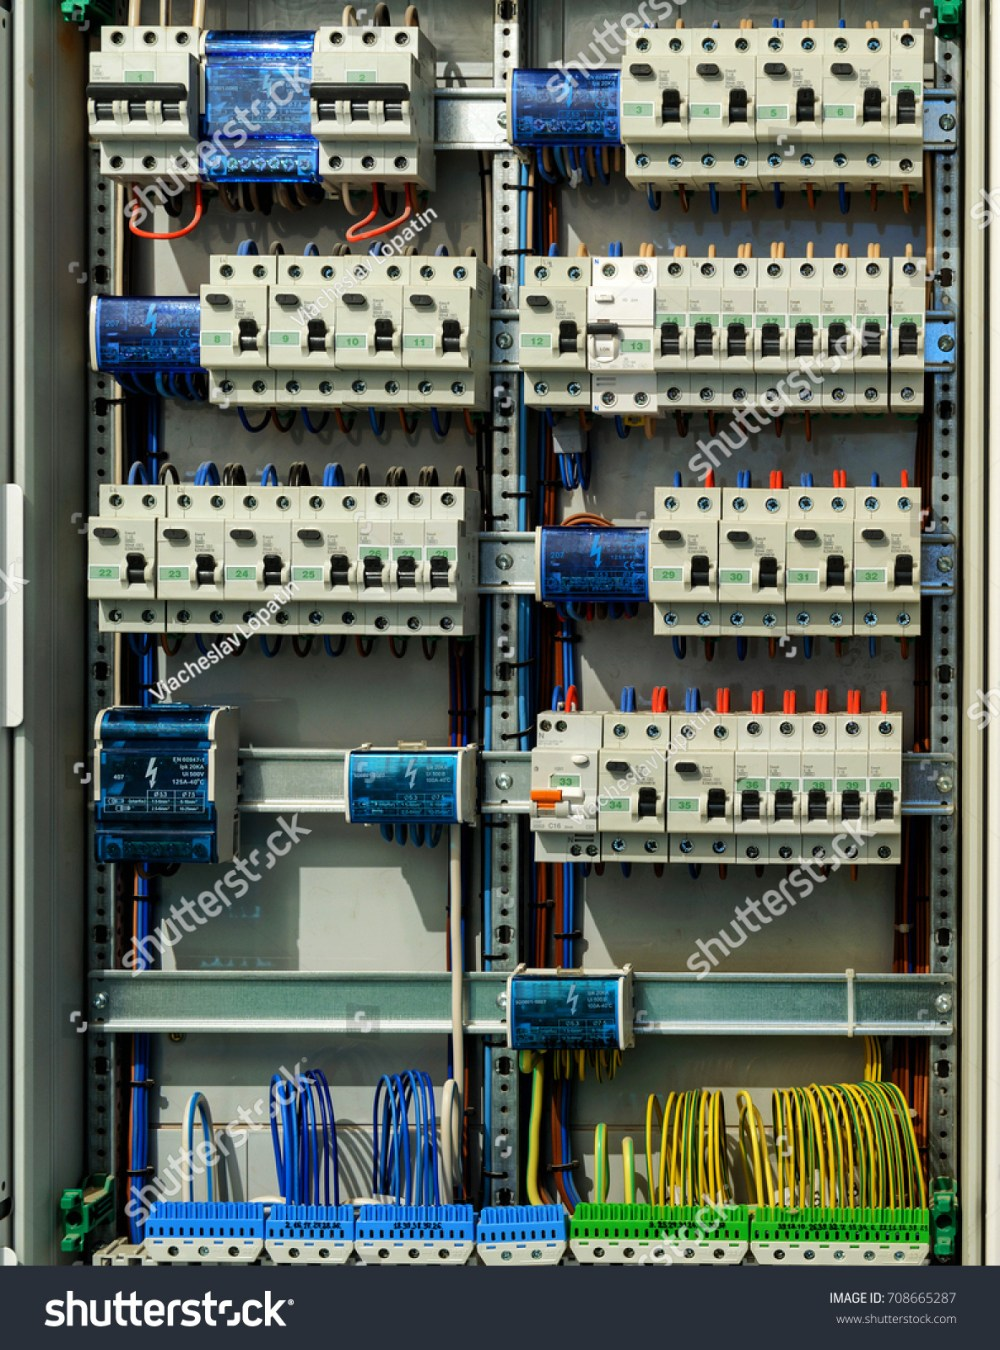 medium resolution of electrical switch box in a house large electric fusebox on a wall open switchboard